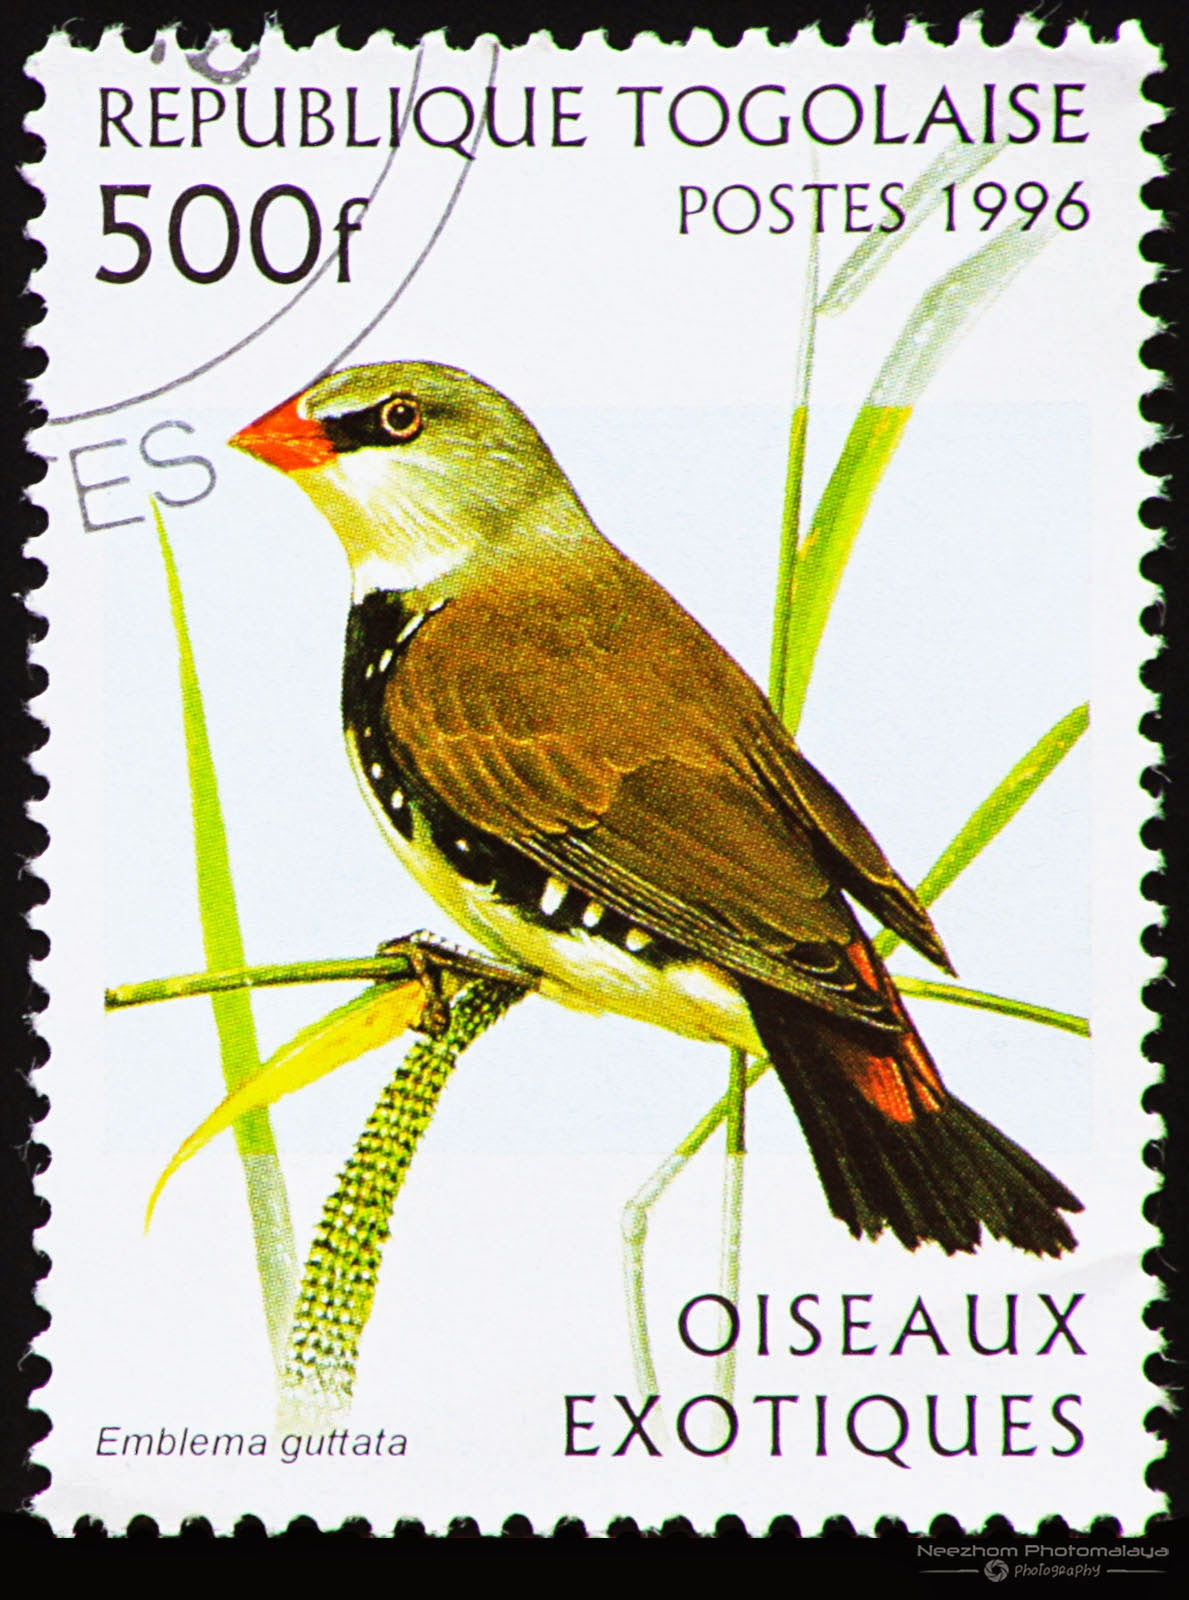 Togo 1996 Exotic Birds stamp - Diamond Firetail (Emblema guttata) 500 f